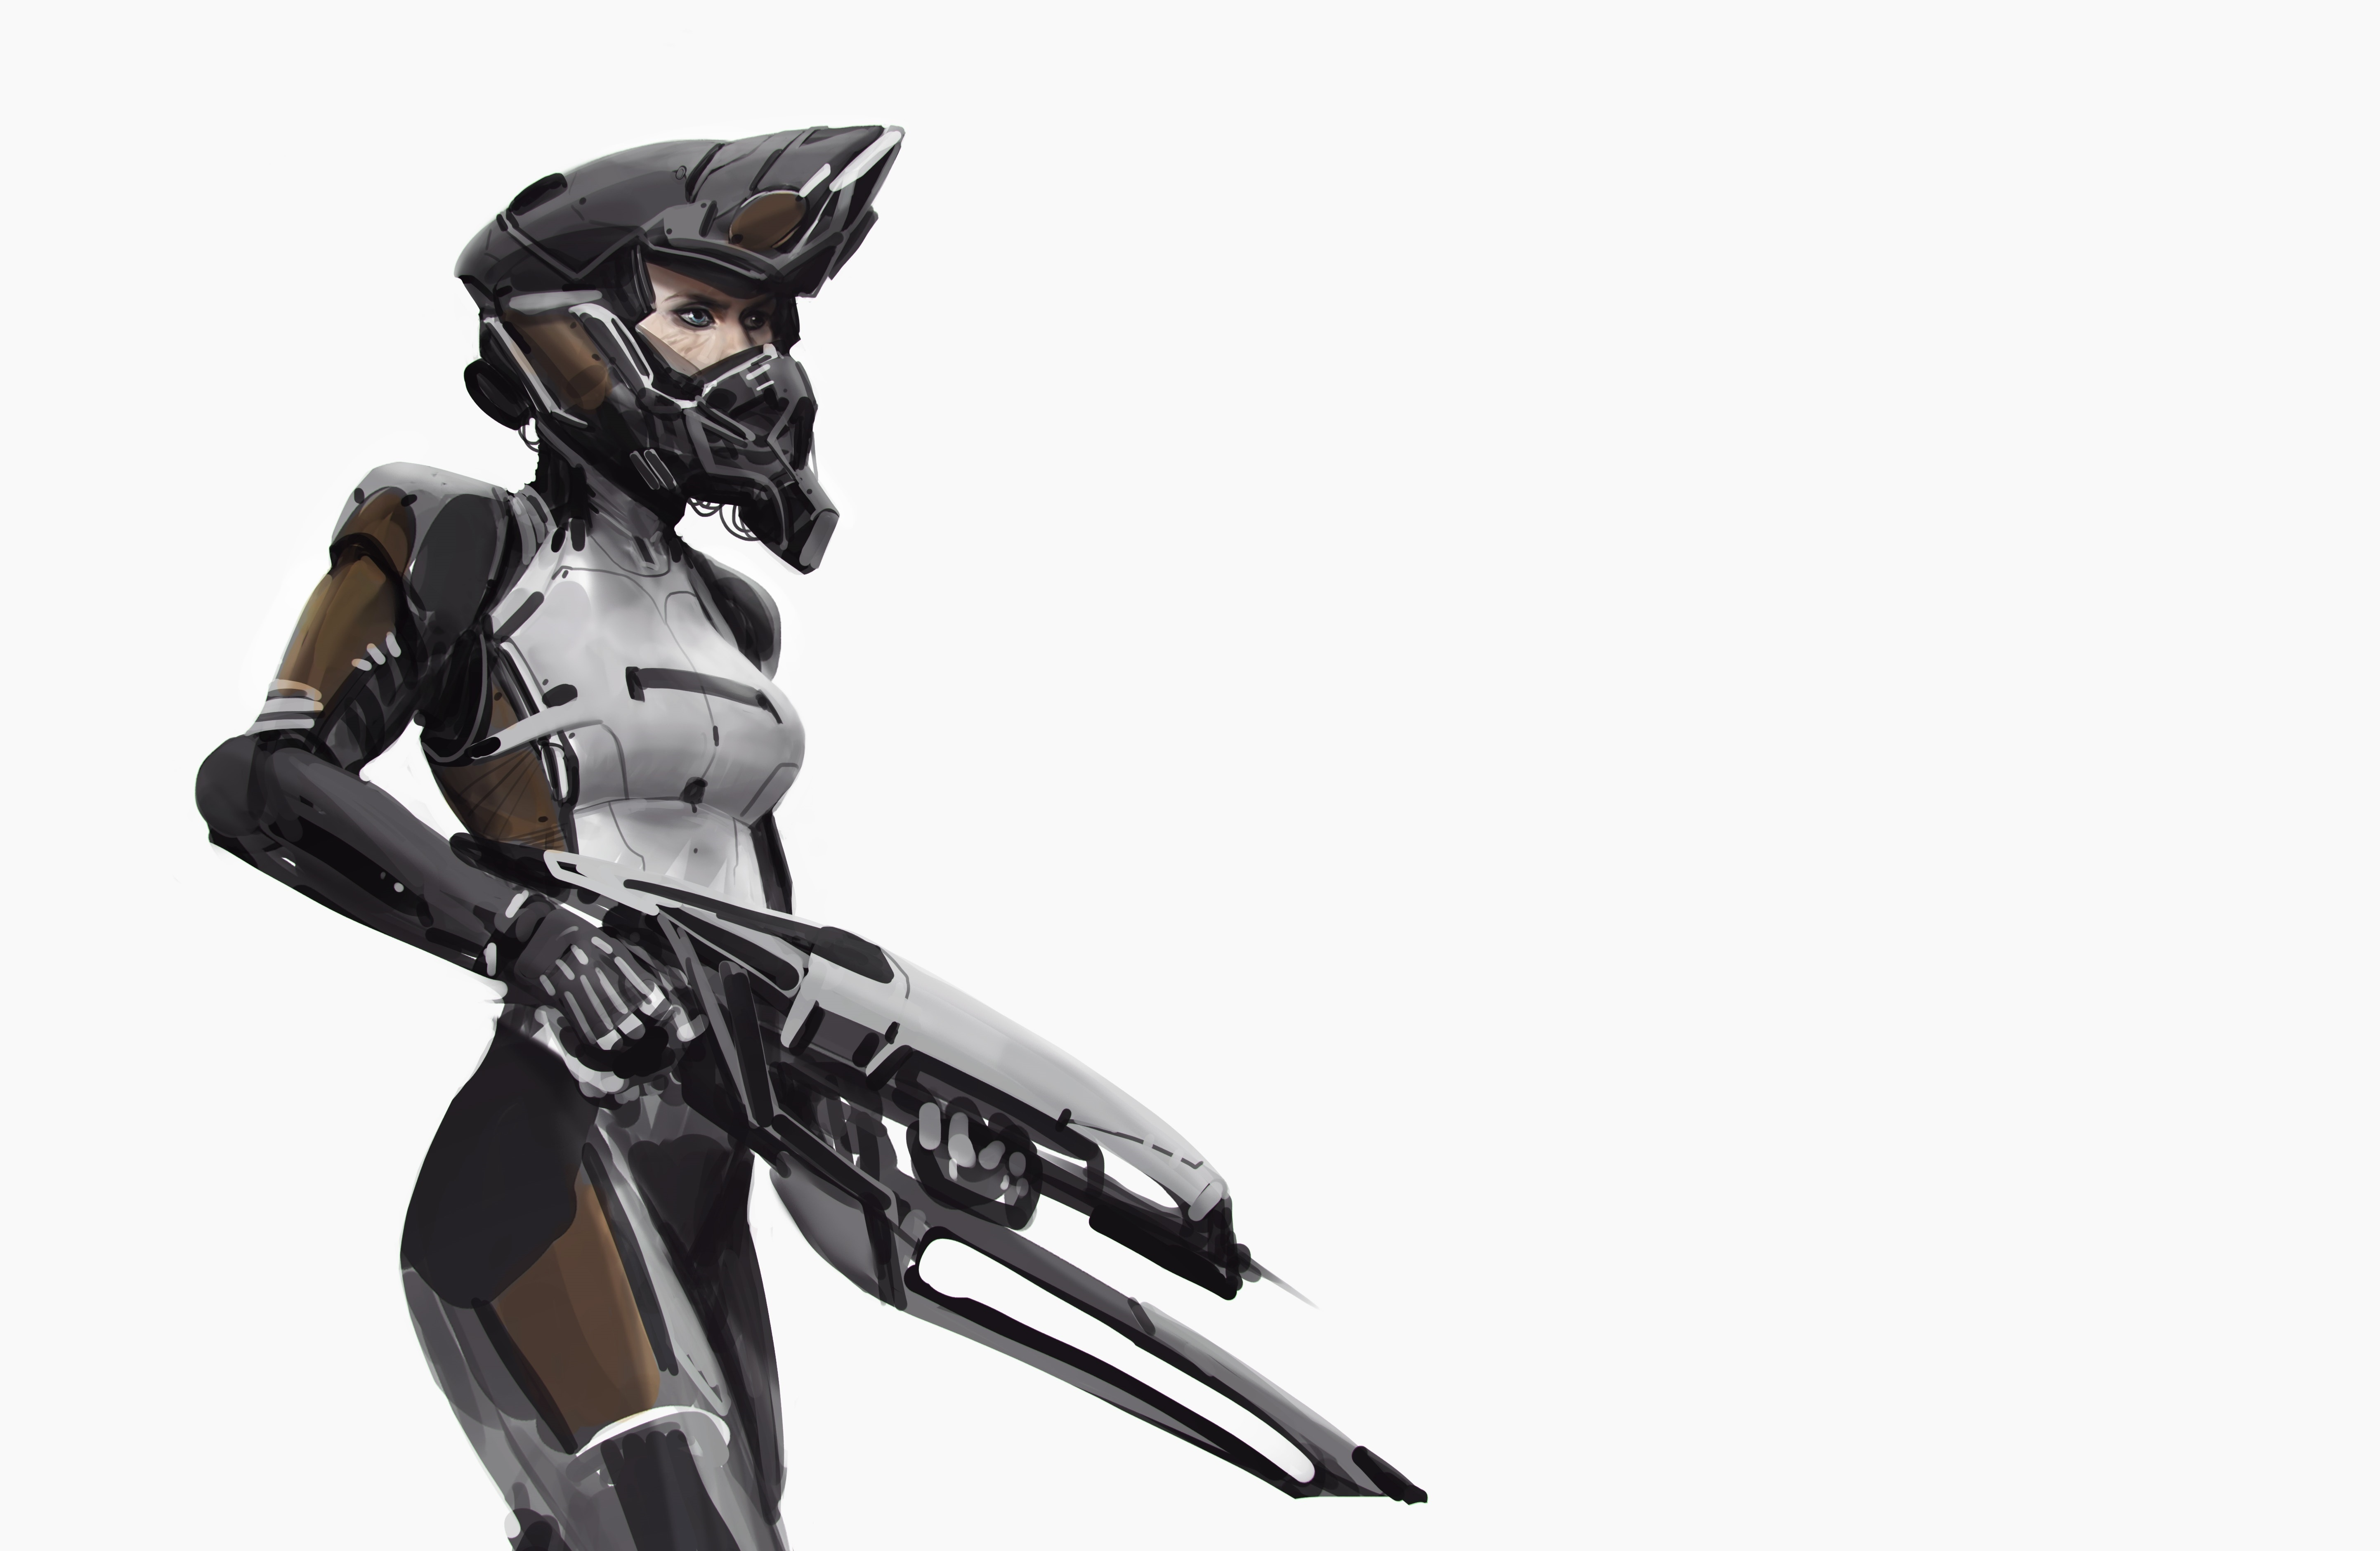 92256 download wallpaper Weapon, Miscellanea, Miscellaneous, Girl, Helmet, Armor, Armour screensavers and pictures for free